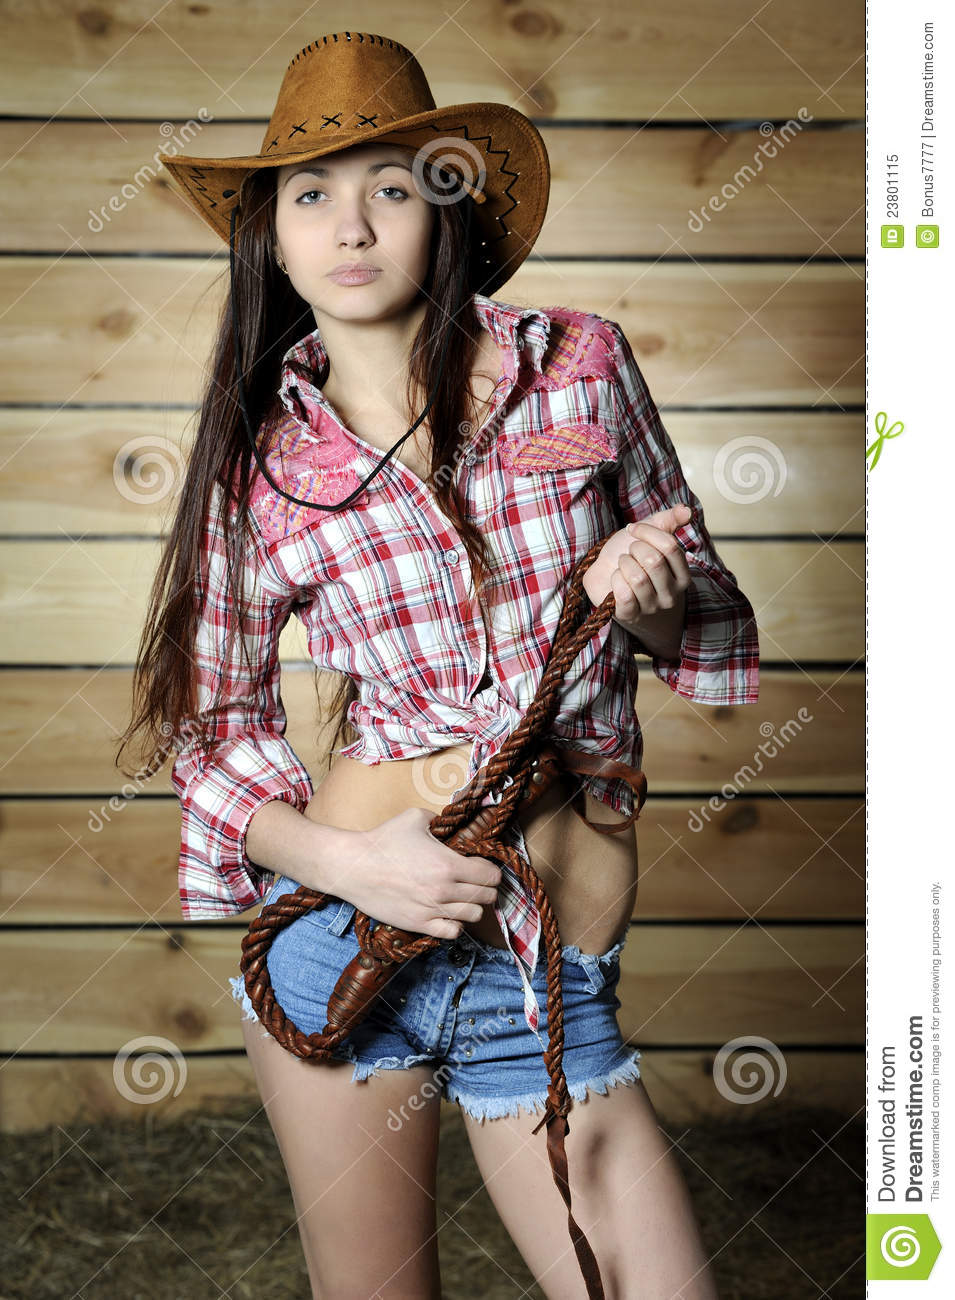 cow girls naked free